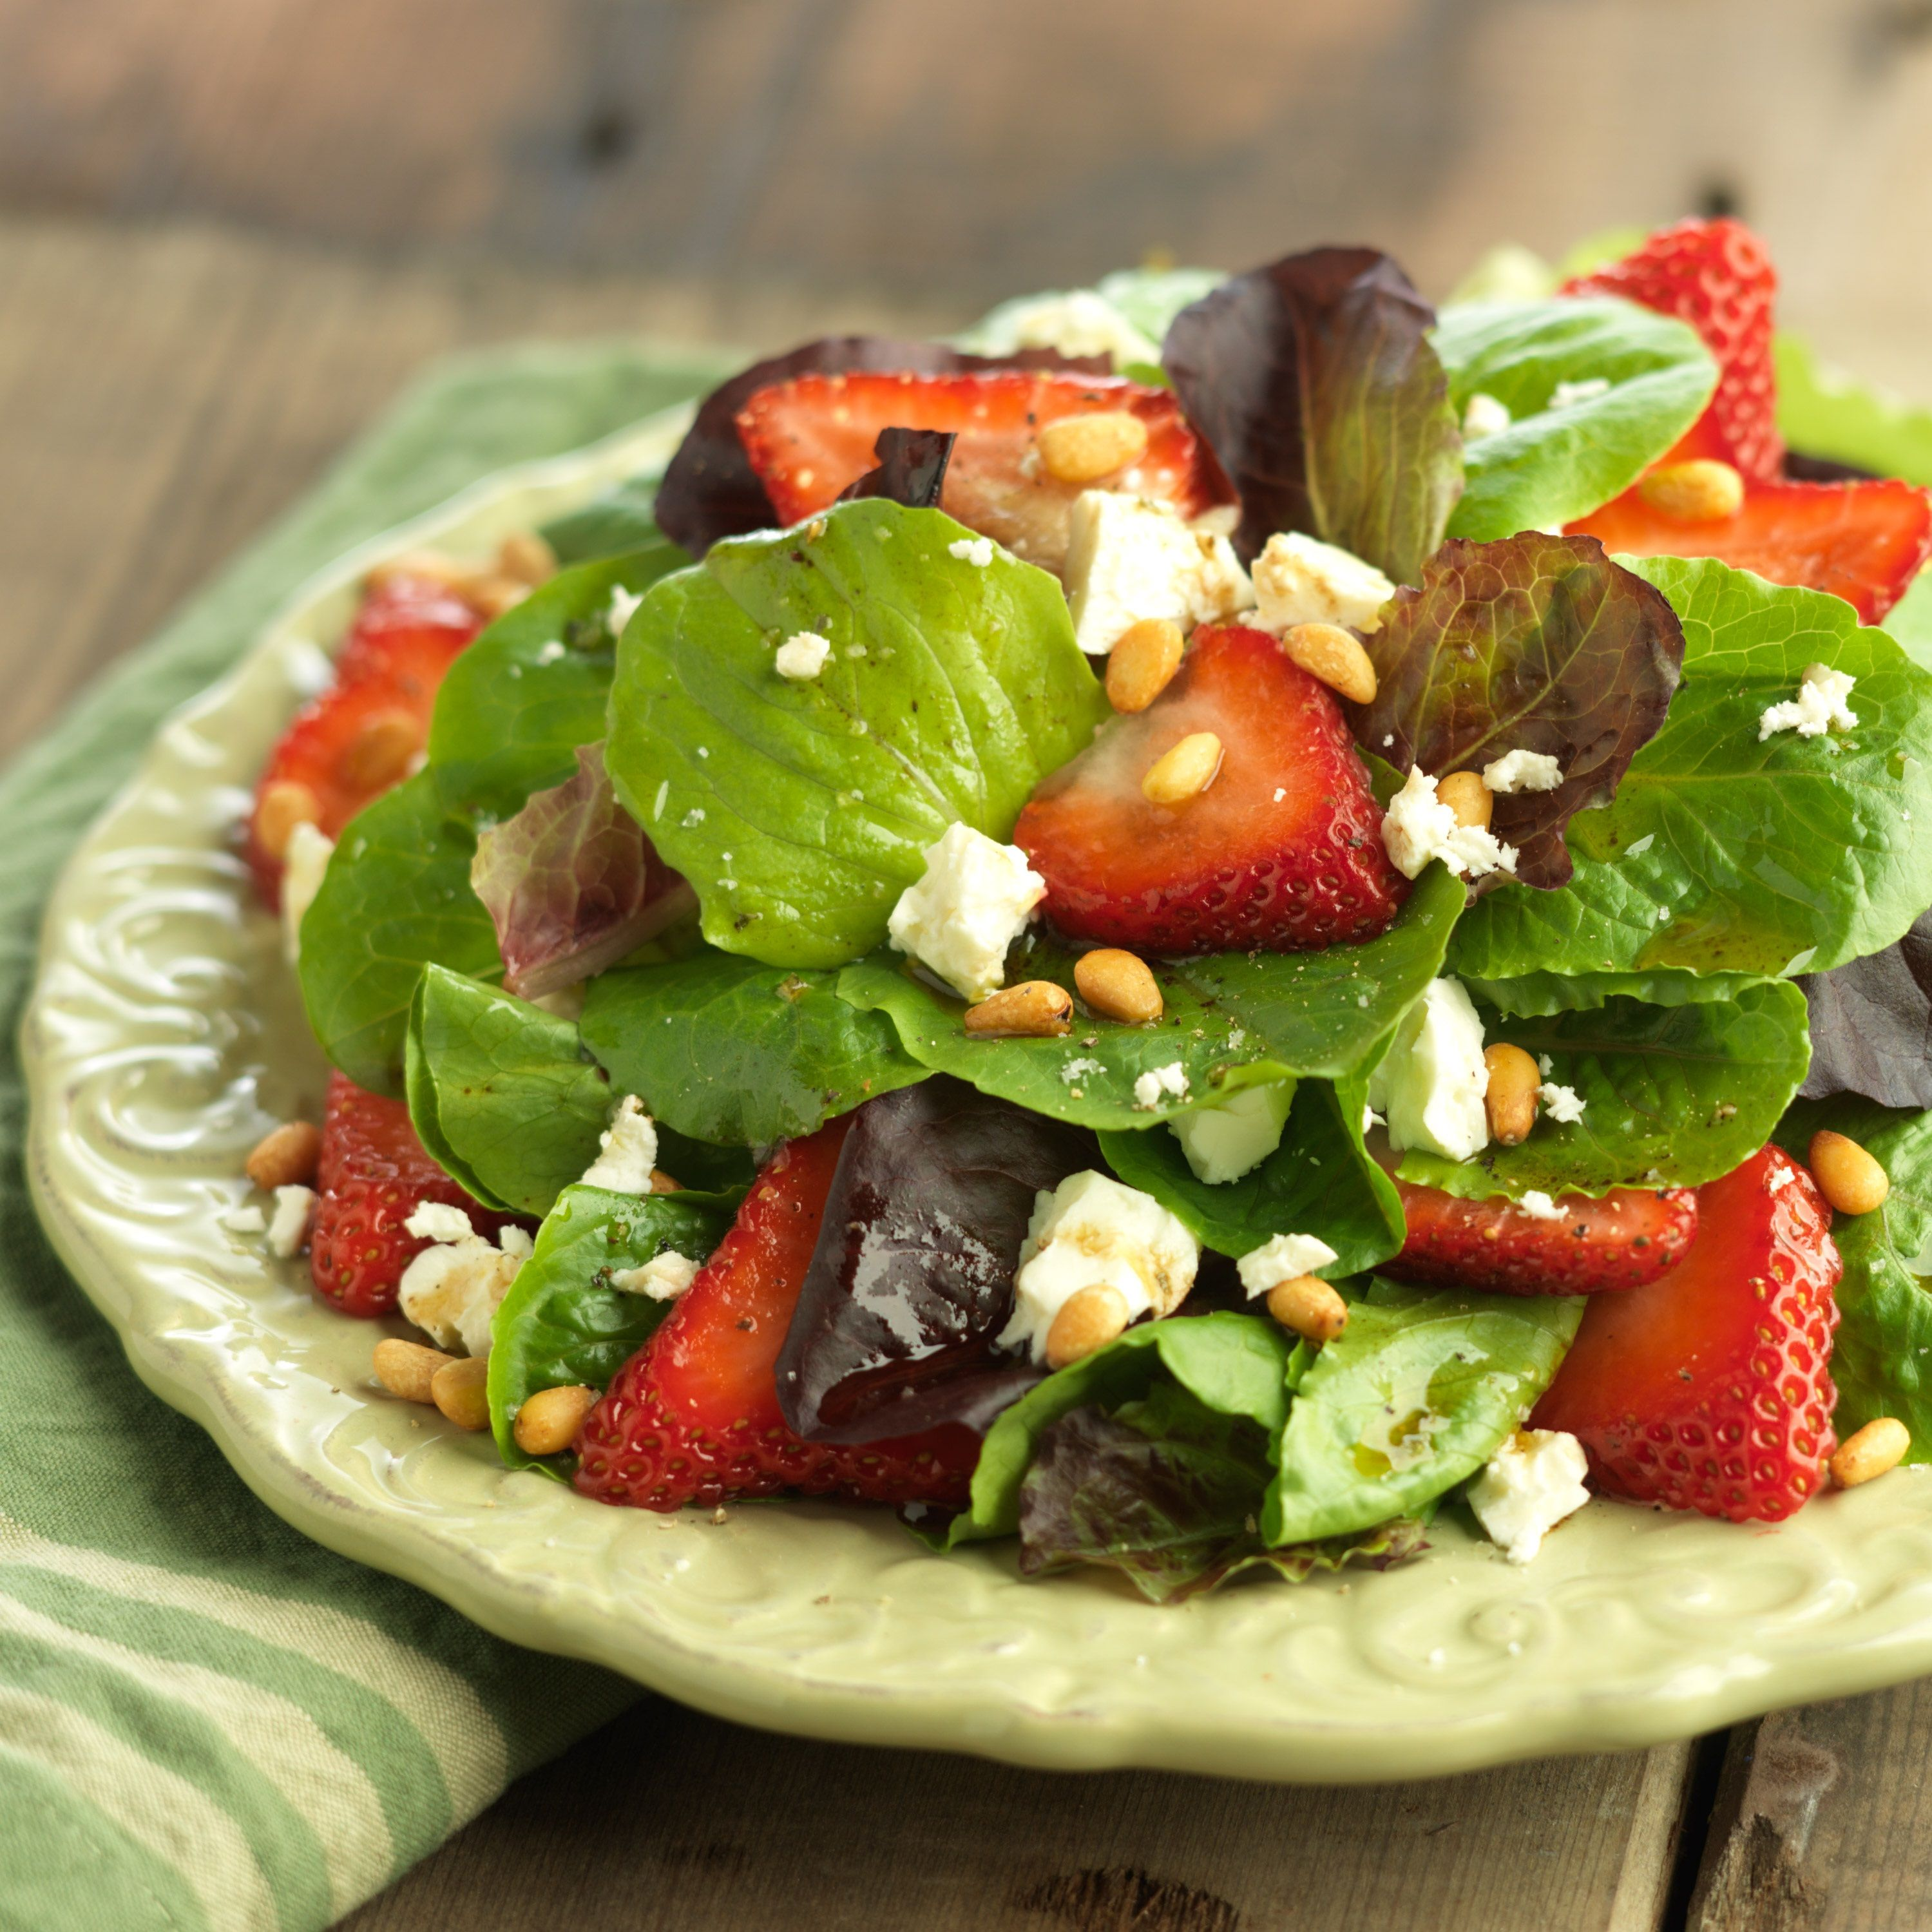 lettuce salad with strawberries - 736×736